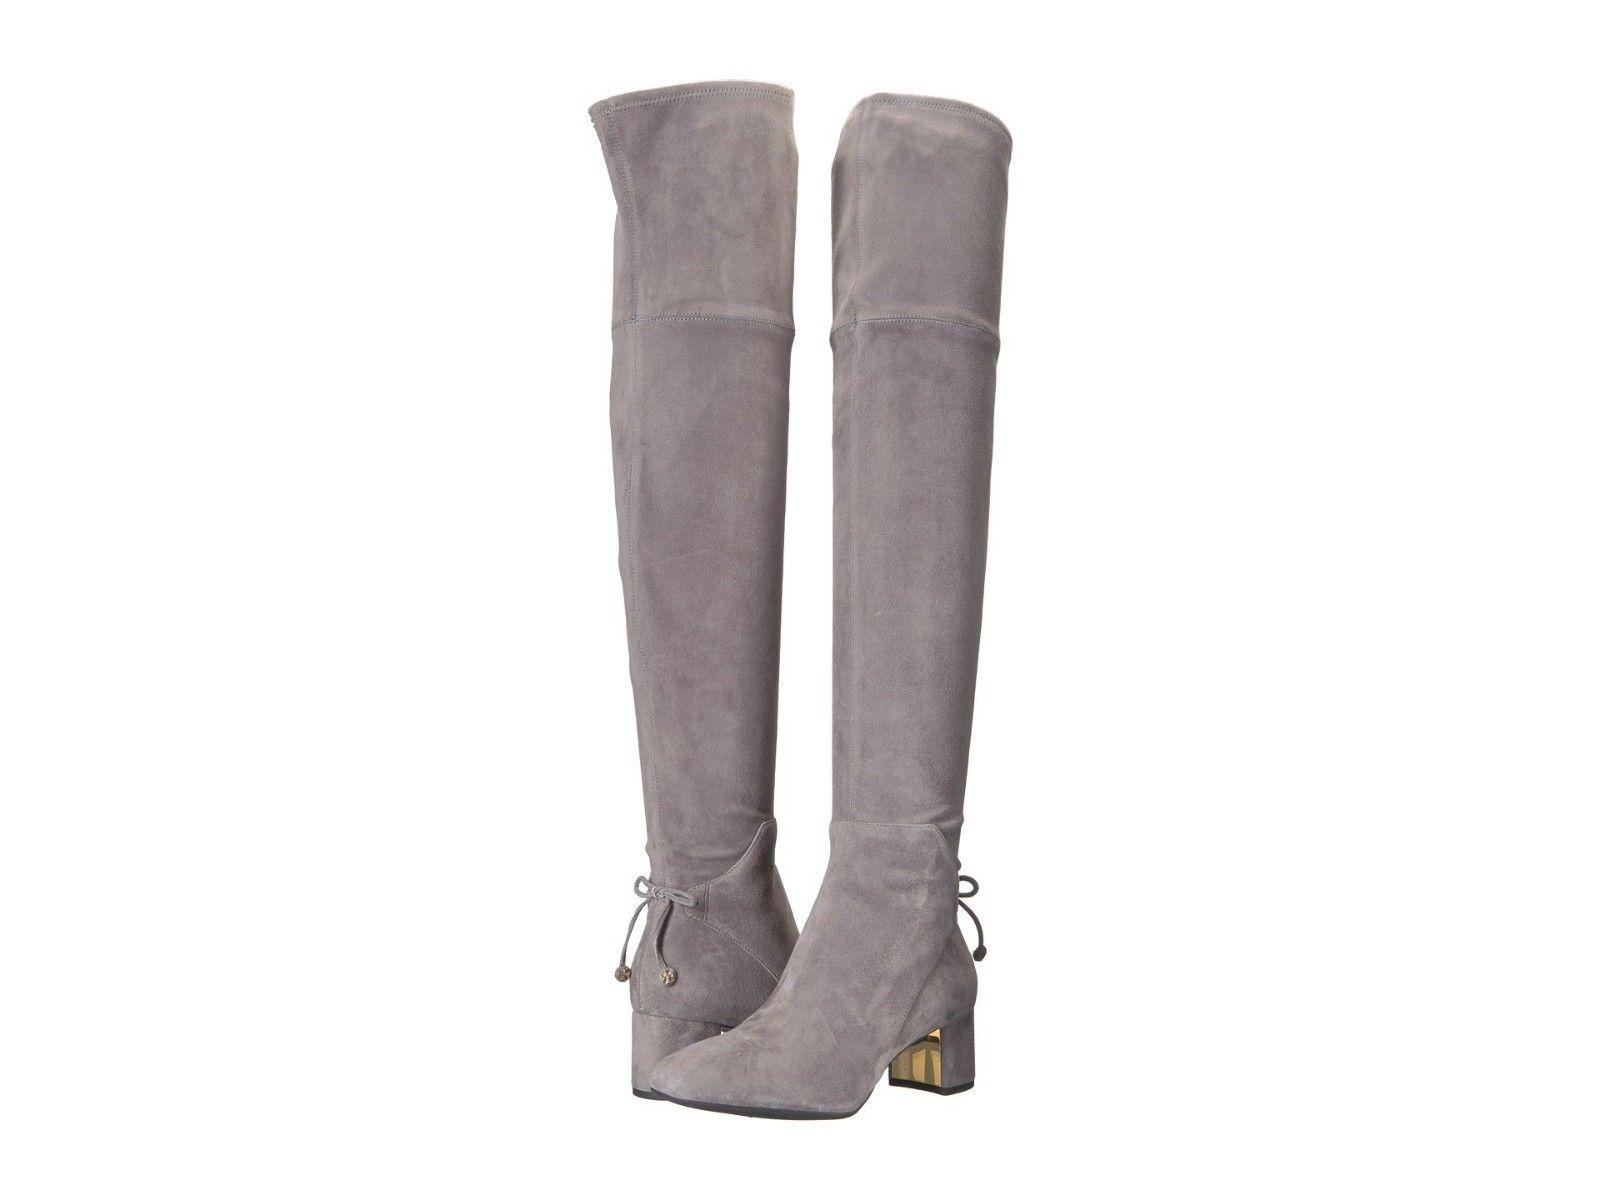 $598 TORY BURCH Over the Knee Boots LAILA Thigh High Booties 6.5 Gray Suede